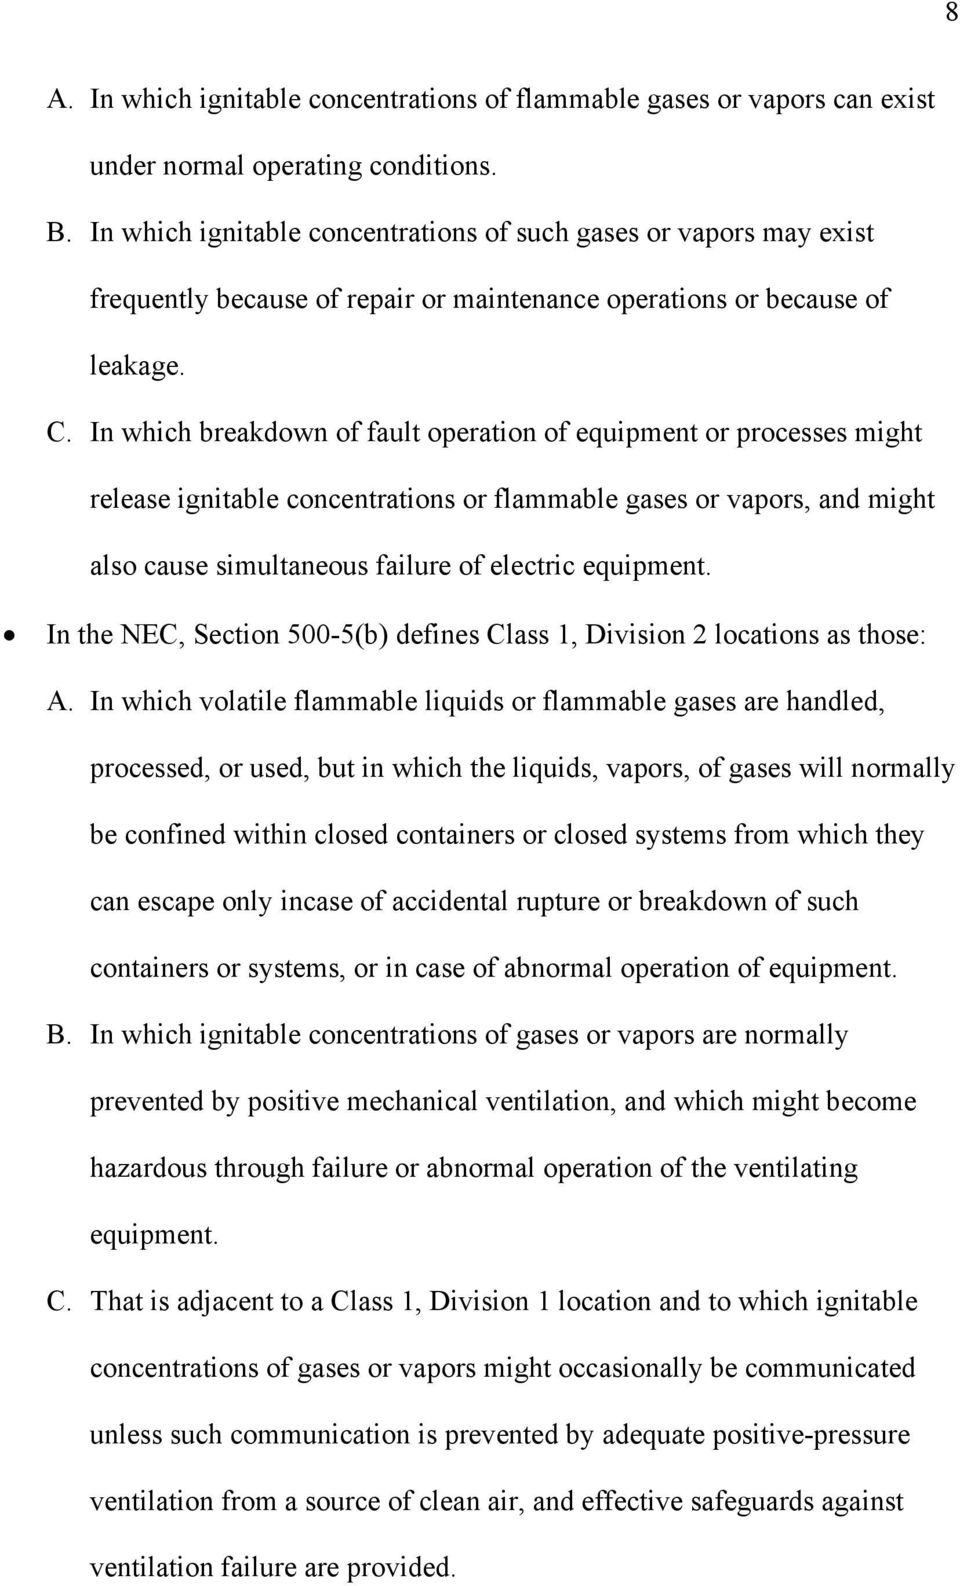 THE ASSESSMENTS OF THE FLAMMABLE LIQUID STORAGE/DISPENSING